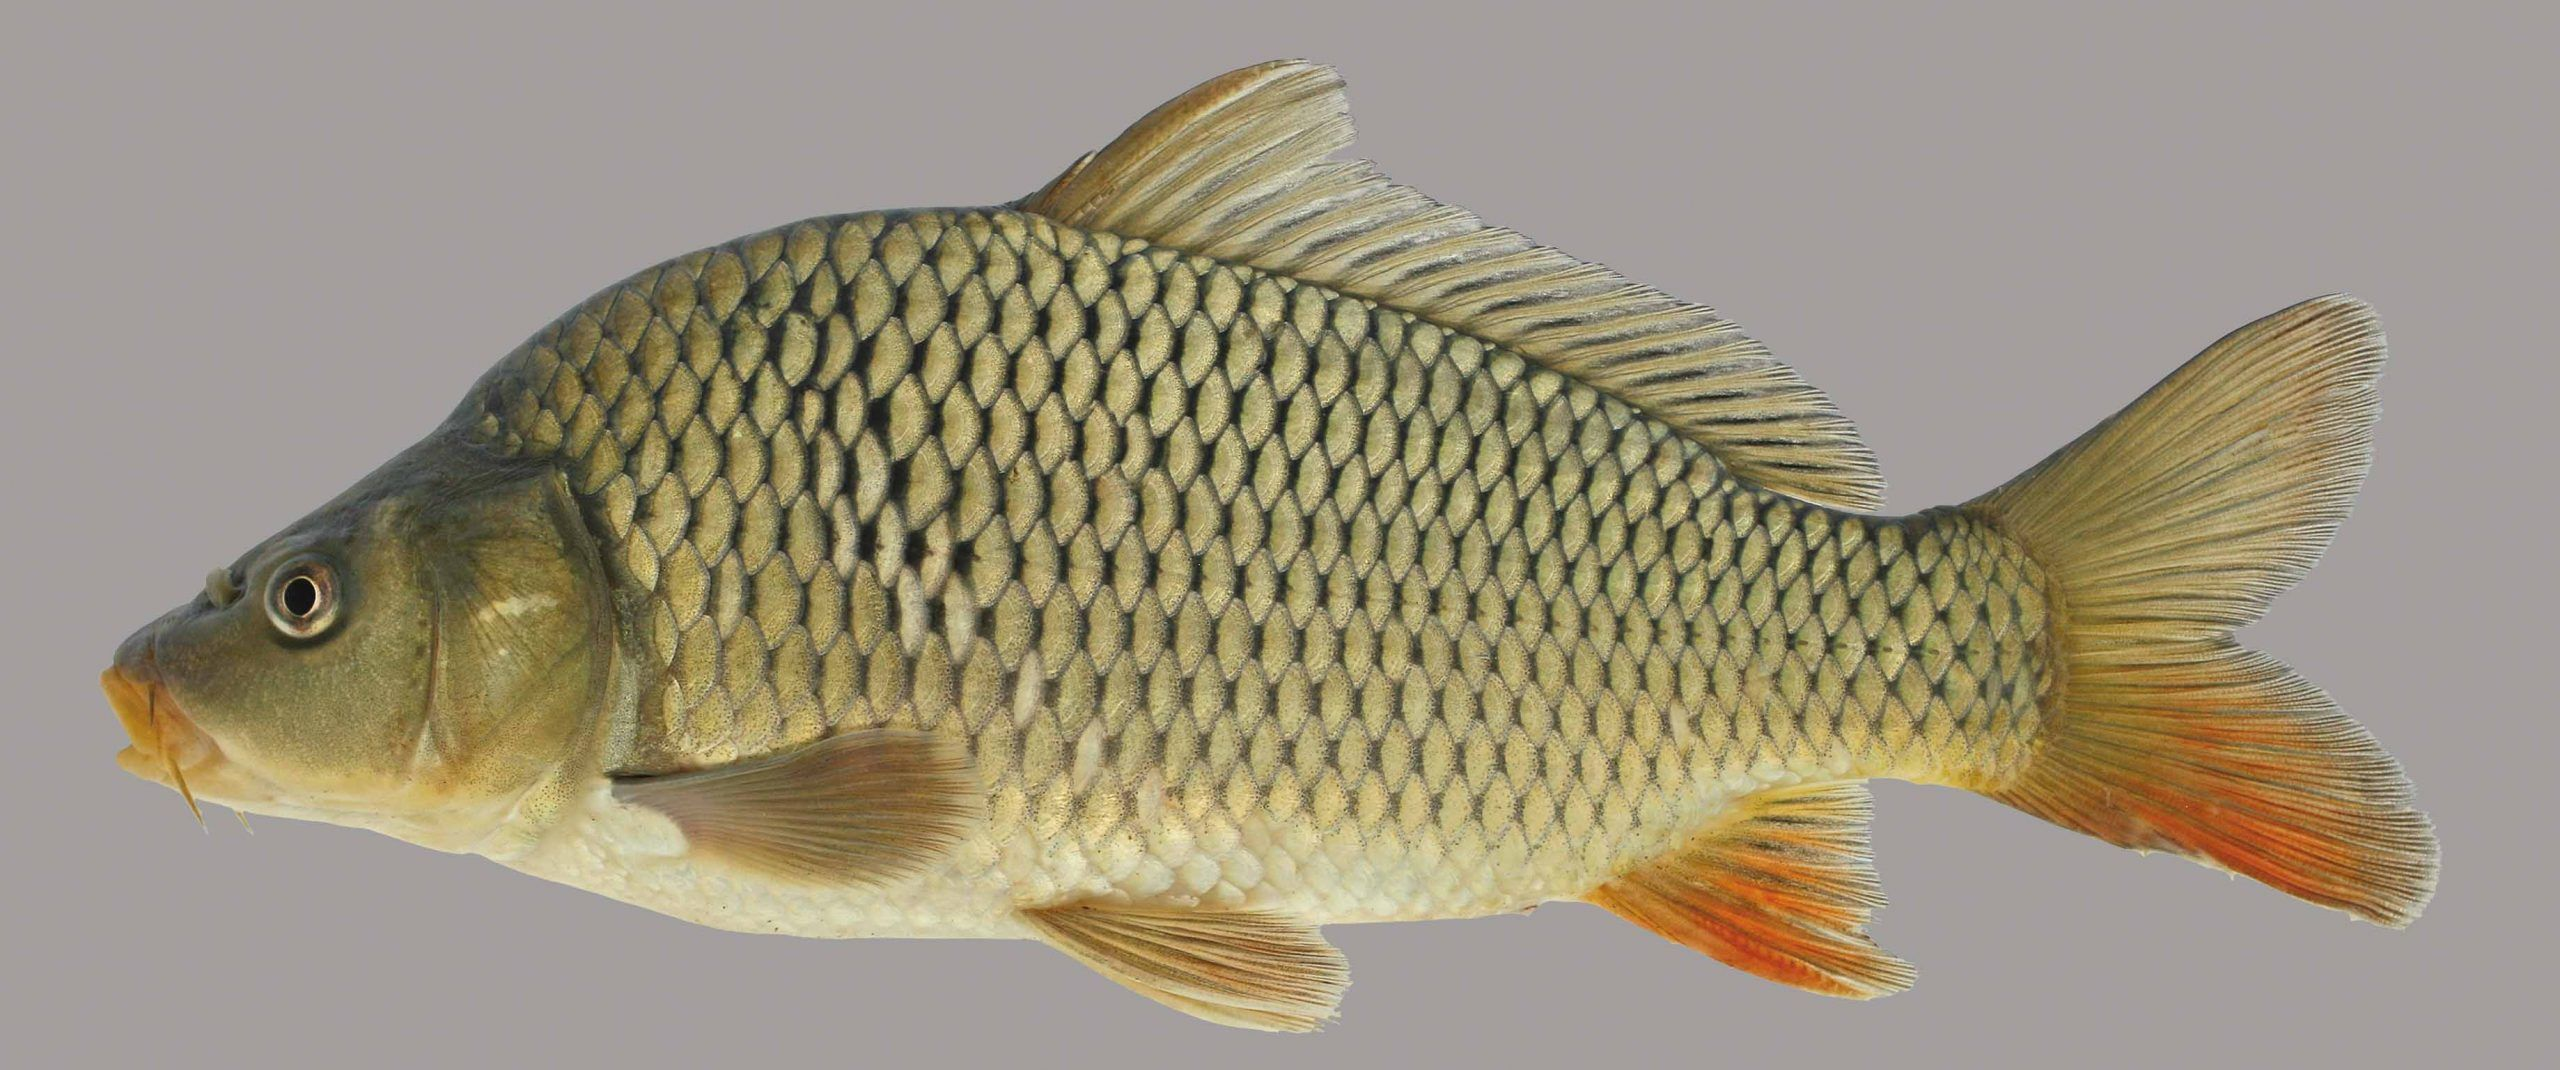 Common Carp Common Carp Fish Fish Gallery